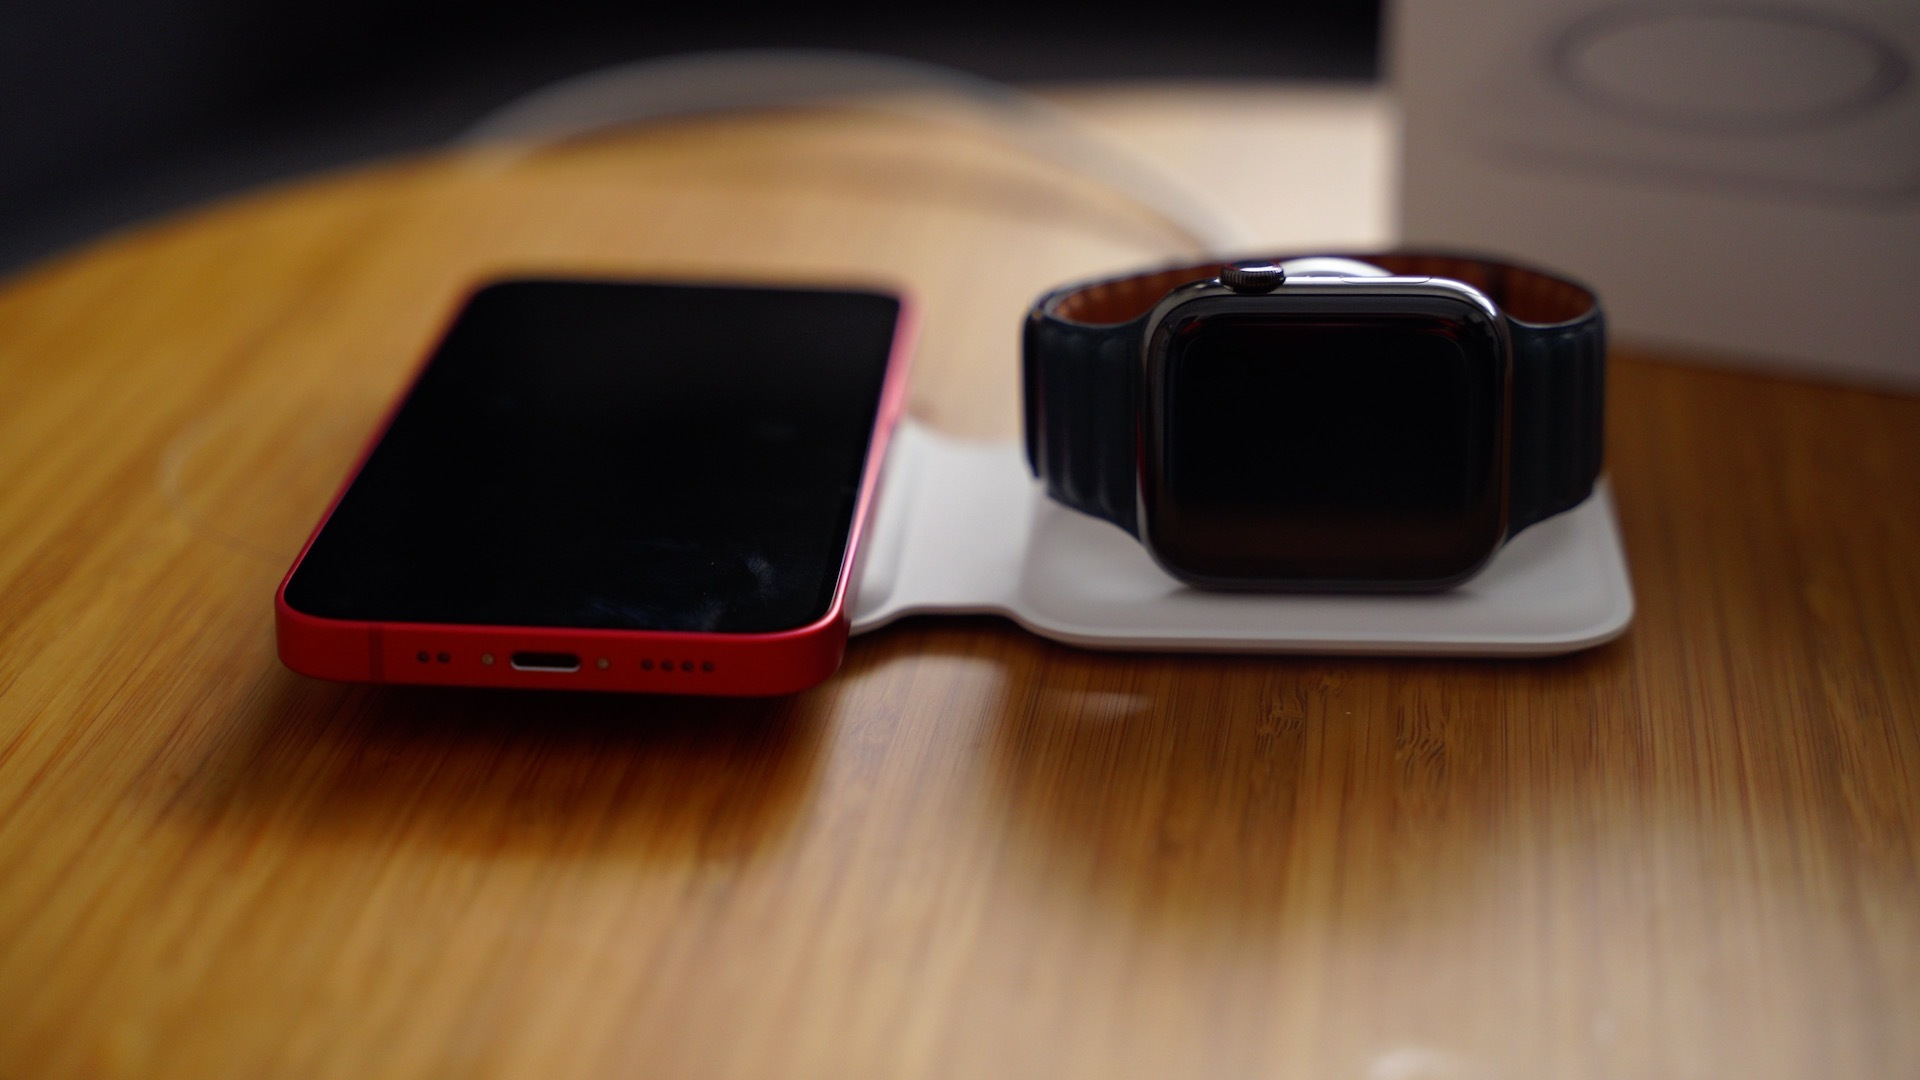 magsafe duo iphone apple watch 2